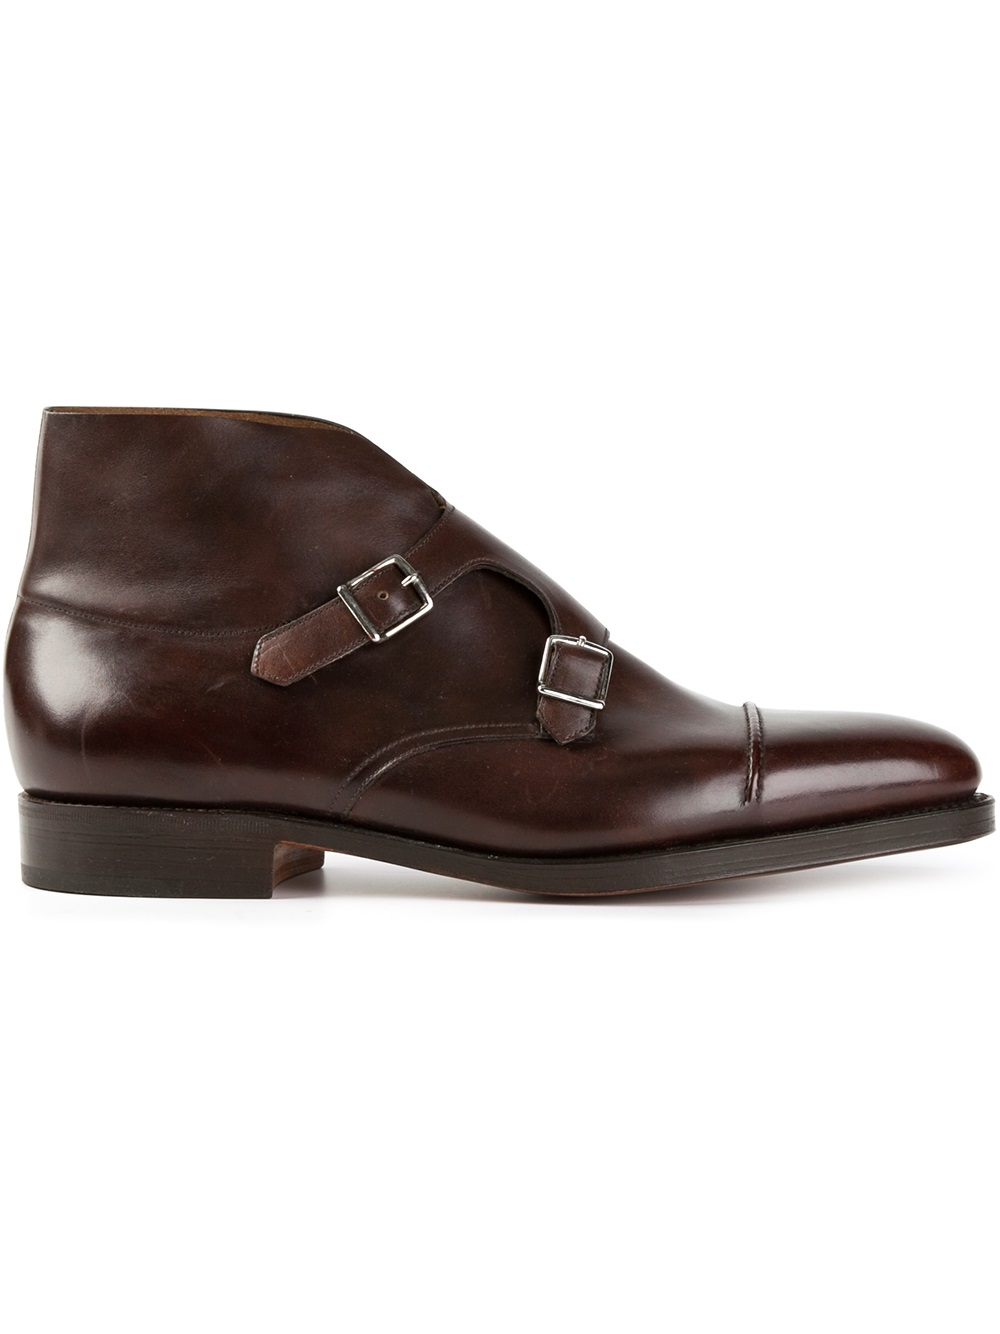 Lyst John Lobb William Ii Boots In Brown For Men